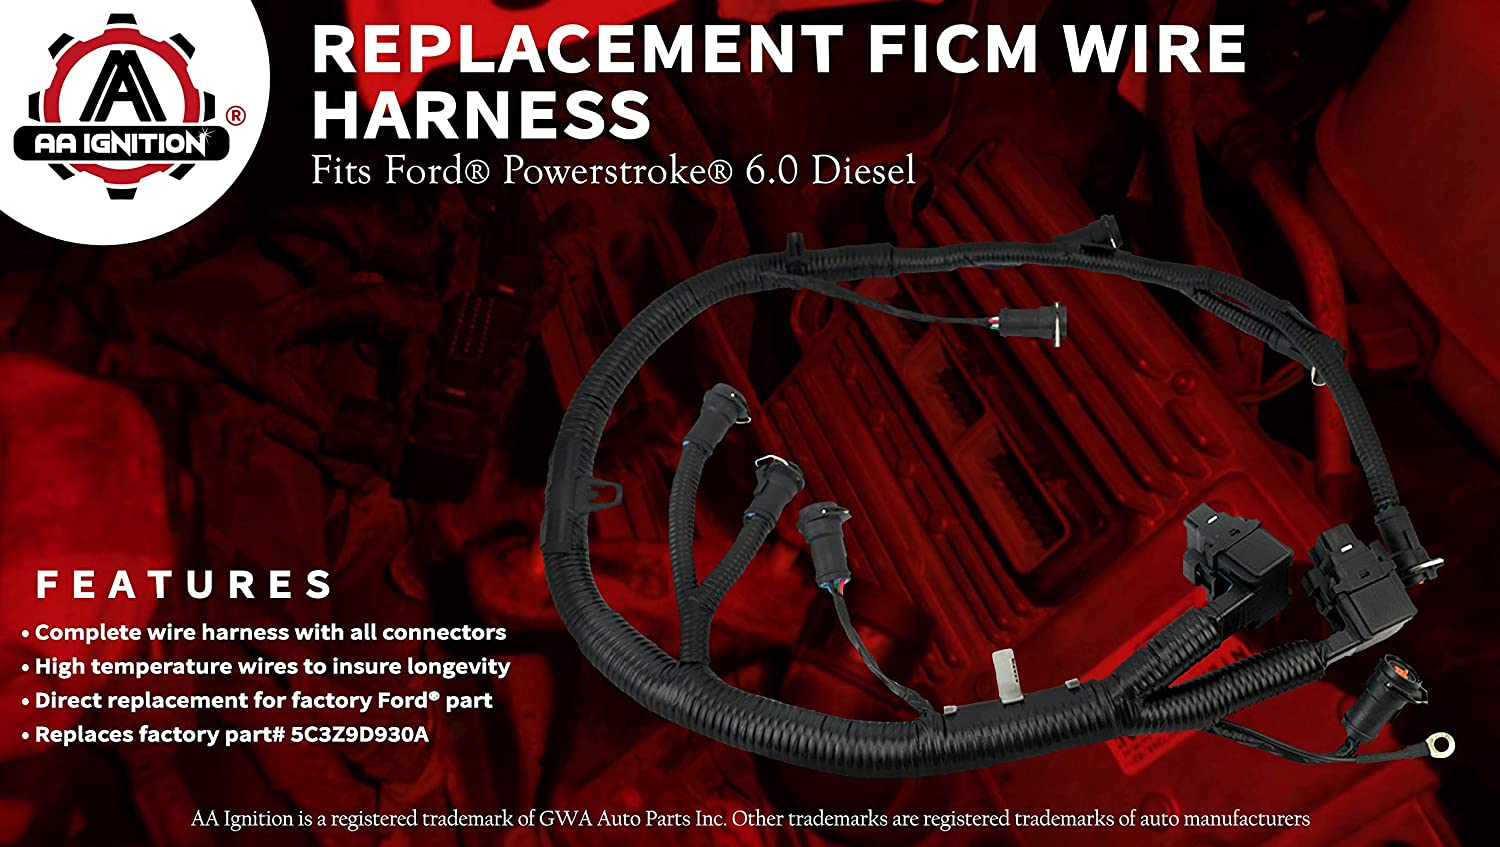 Ficm Engine Fuel Injector Complete Wire Harness 2004 F350 Wiring Replaces Part 5c3z9d930a Fits Ford Powerstroke 60l Diesel 2003 2005 2006